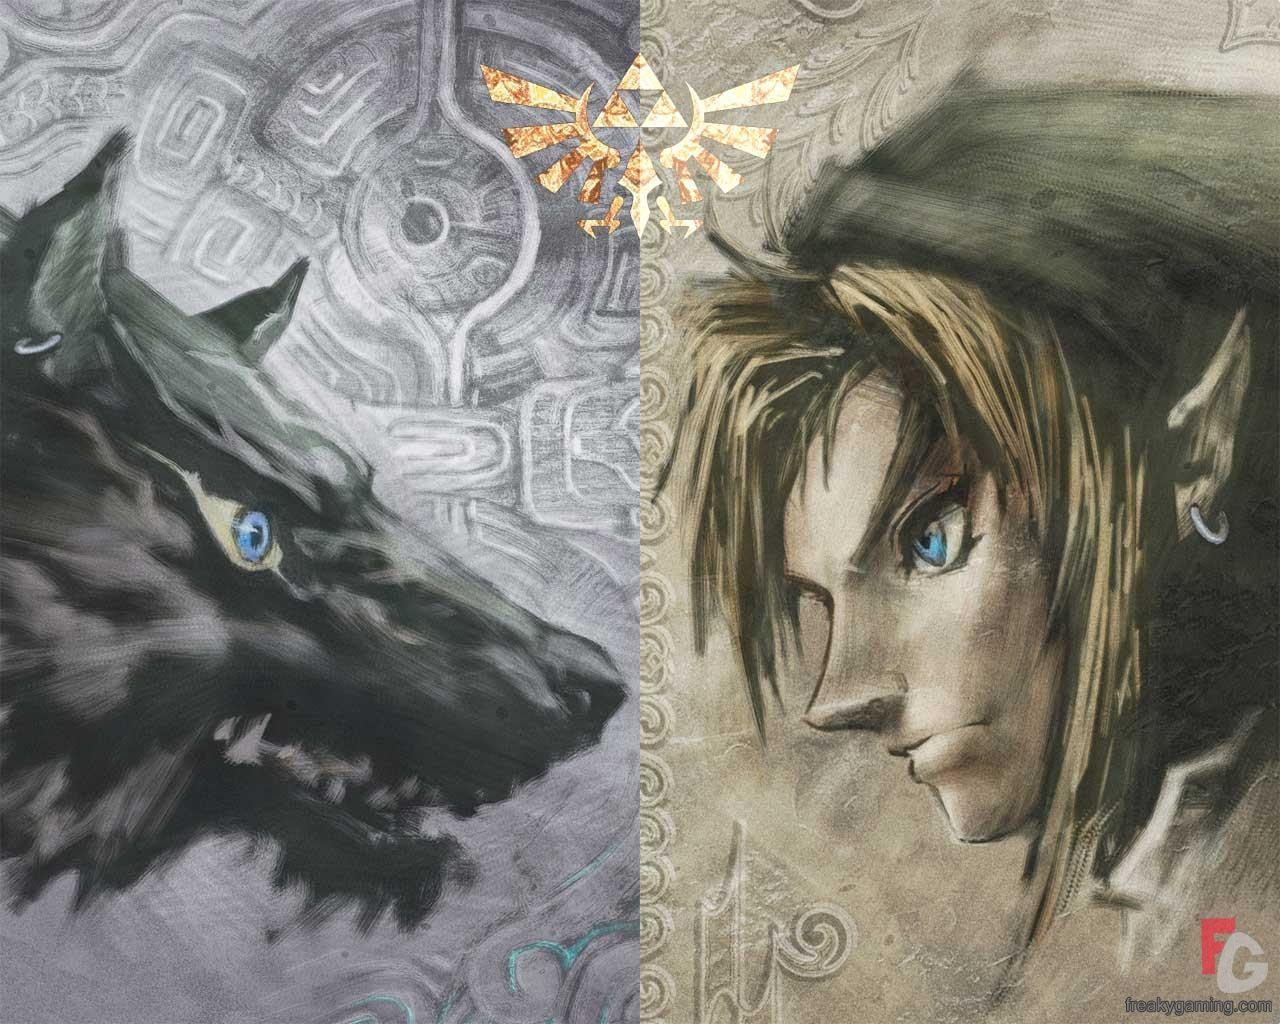 Twilight Princess Wallpapers - Wallpaper Cave